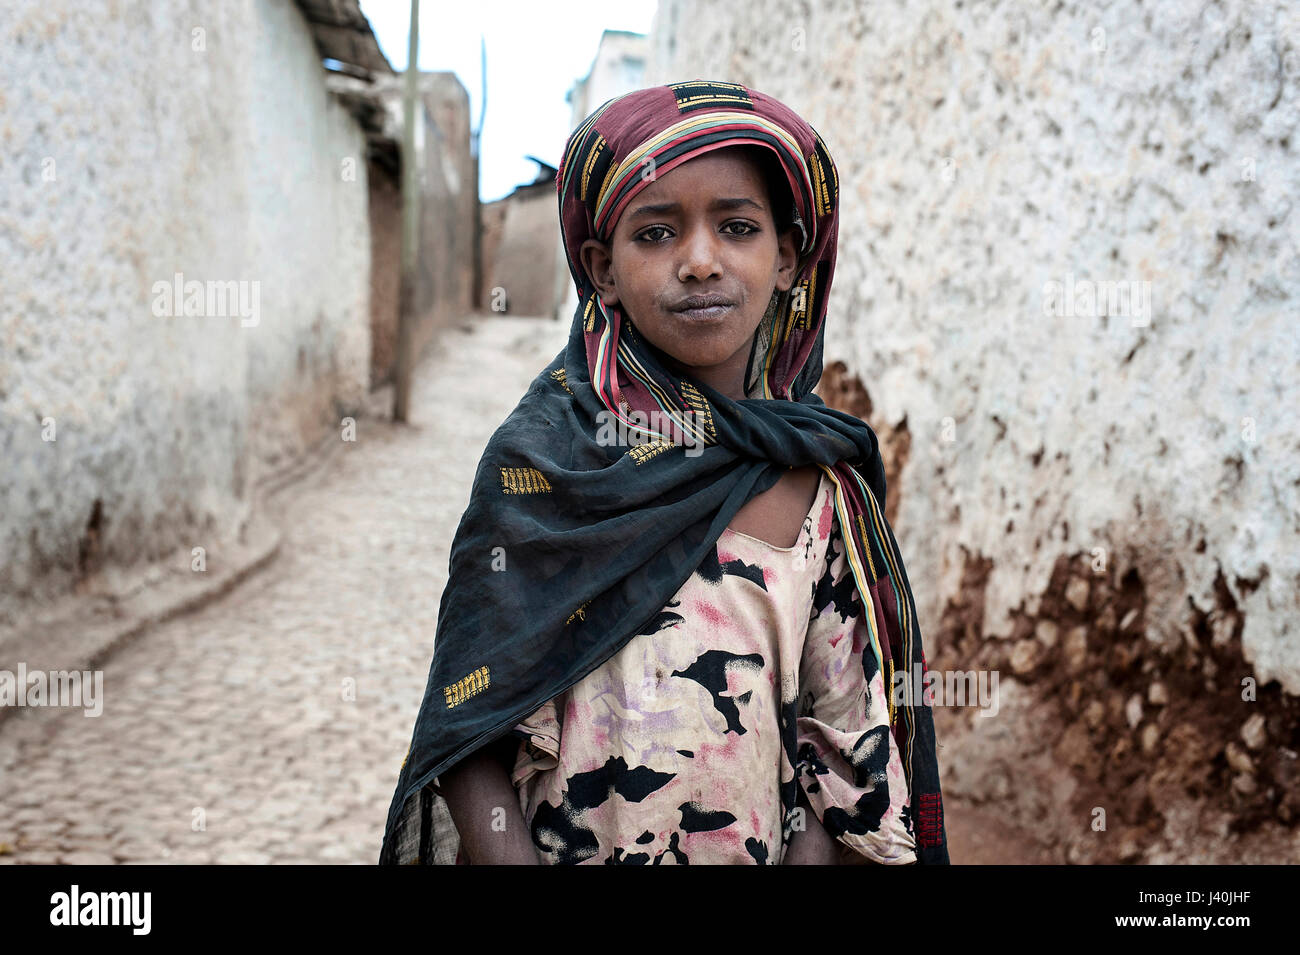 HARAR - ETHIOPIA - DECEMBER 25, 2012  standing portrait of a young muslim girl in the streets of Harar, Ethiopia - Stock Image